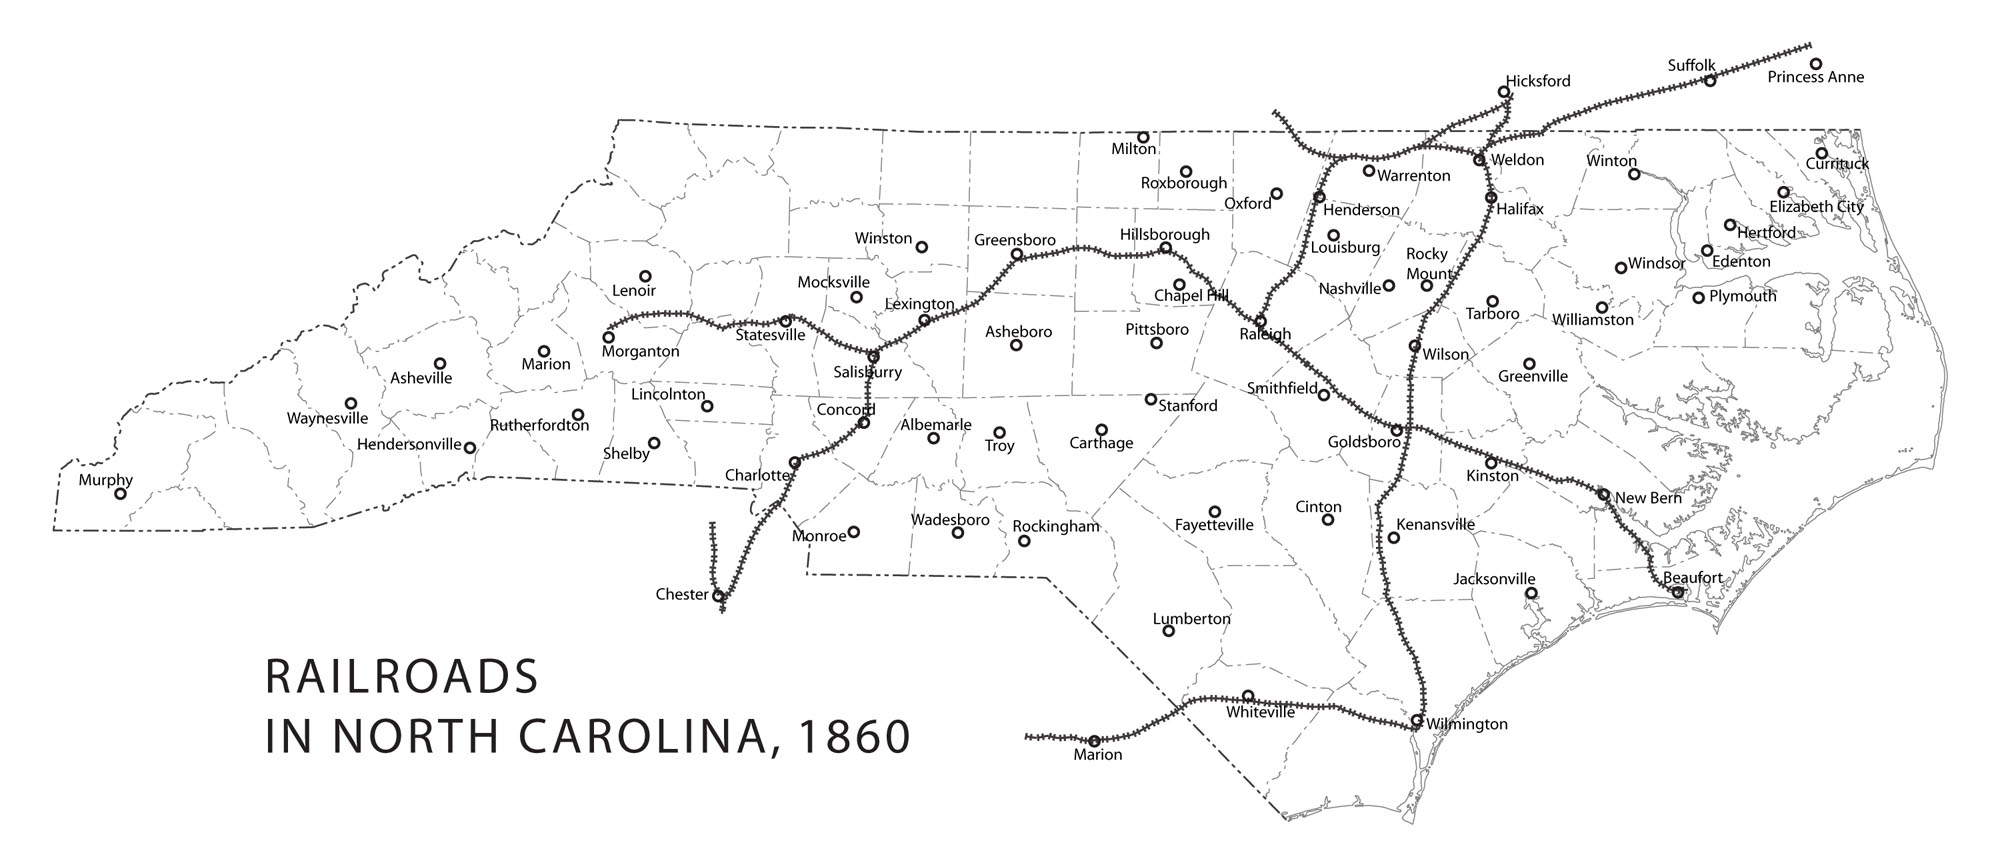 Railroads in North Carolina, 1860